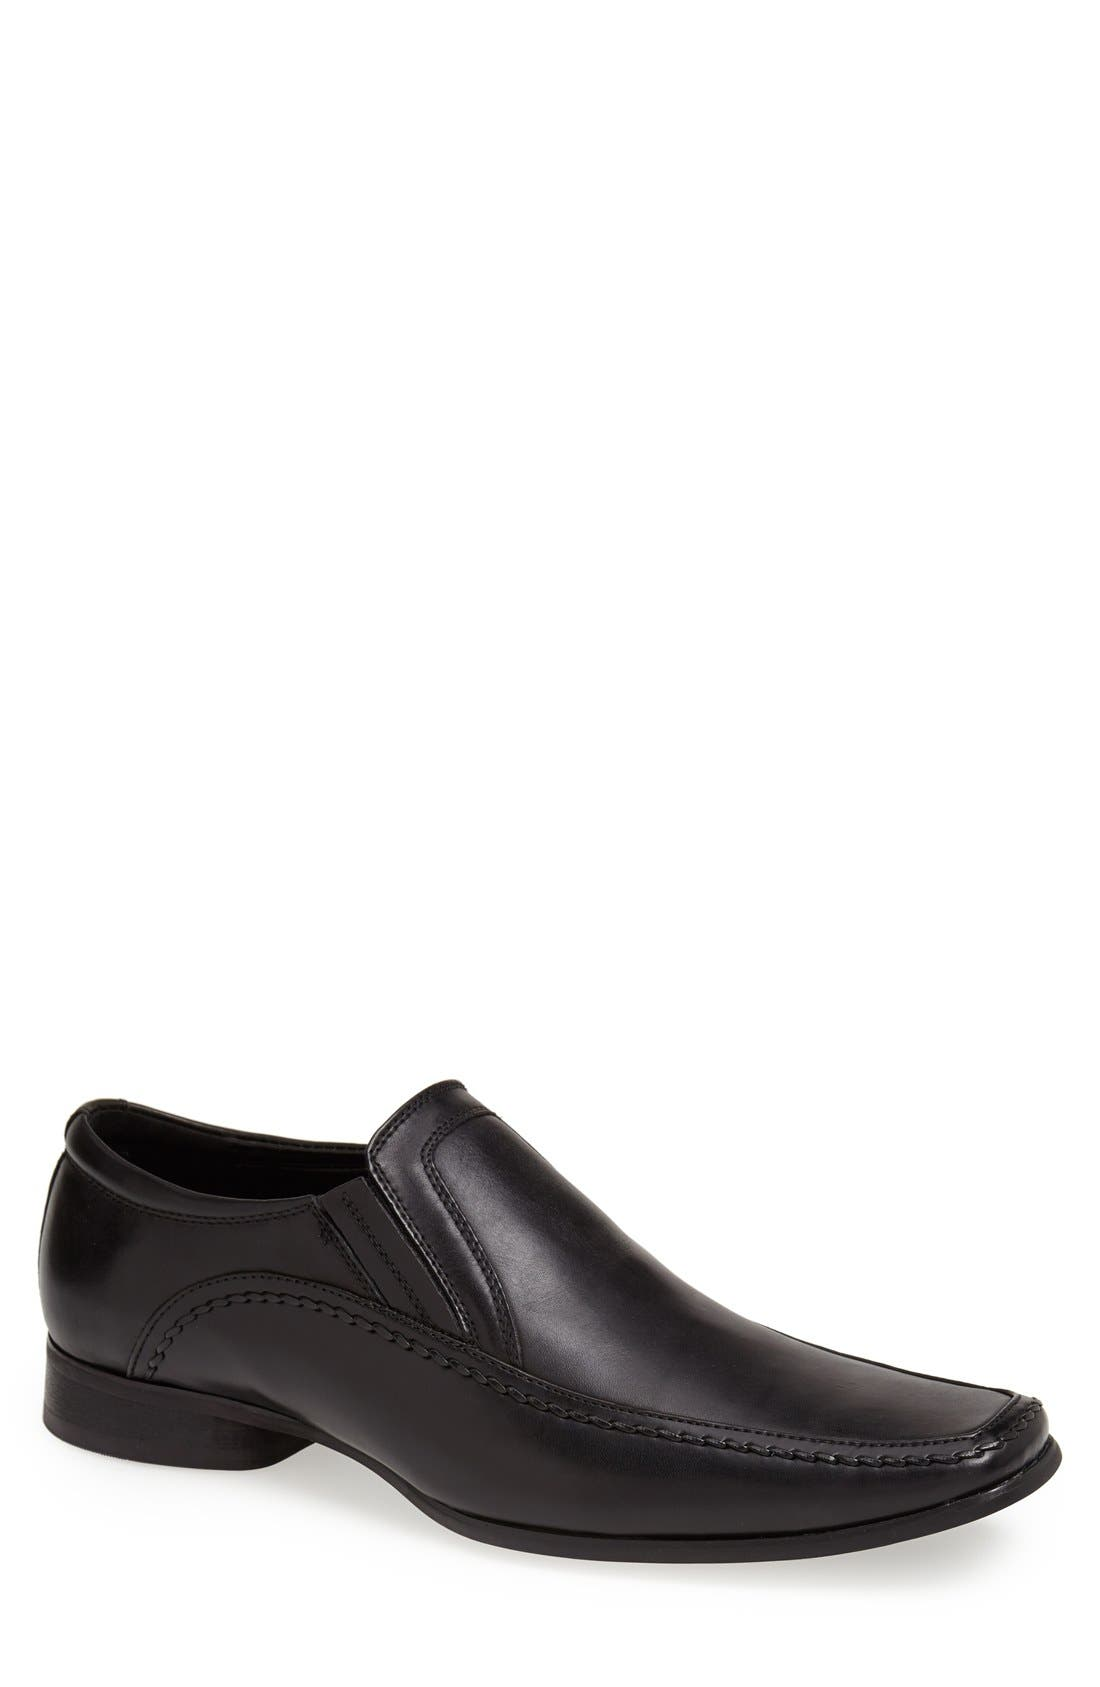 Alternate Image 1 Selected - Reaction Kenneth Cole 'Key Note' Slip-On